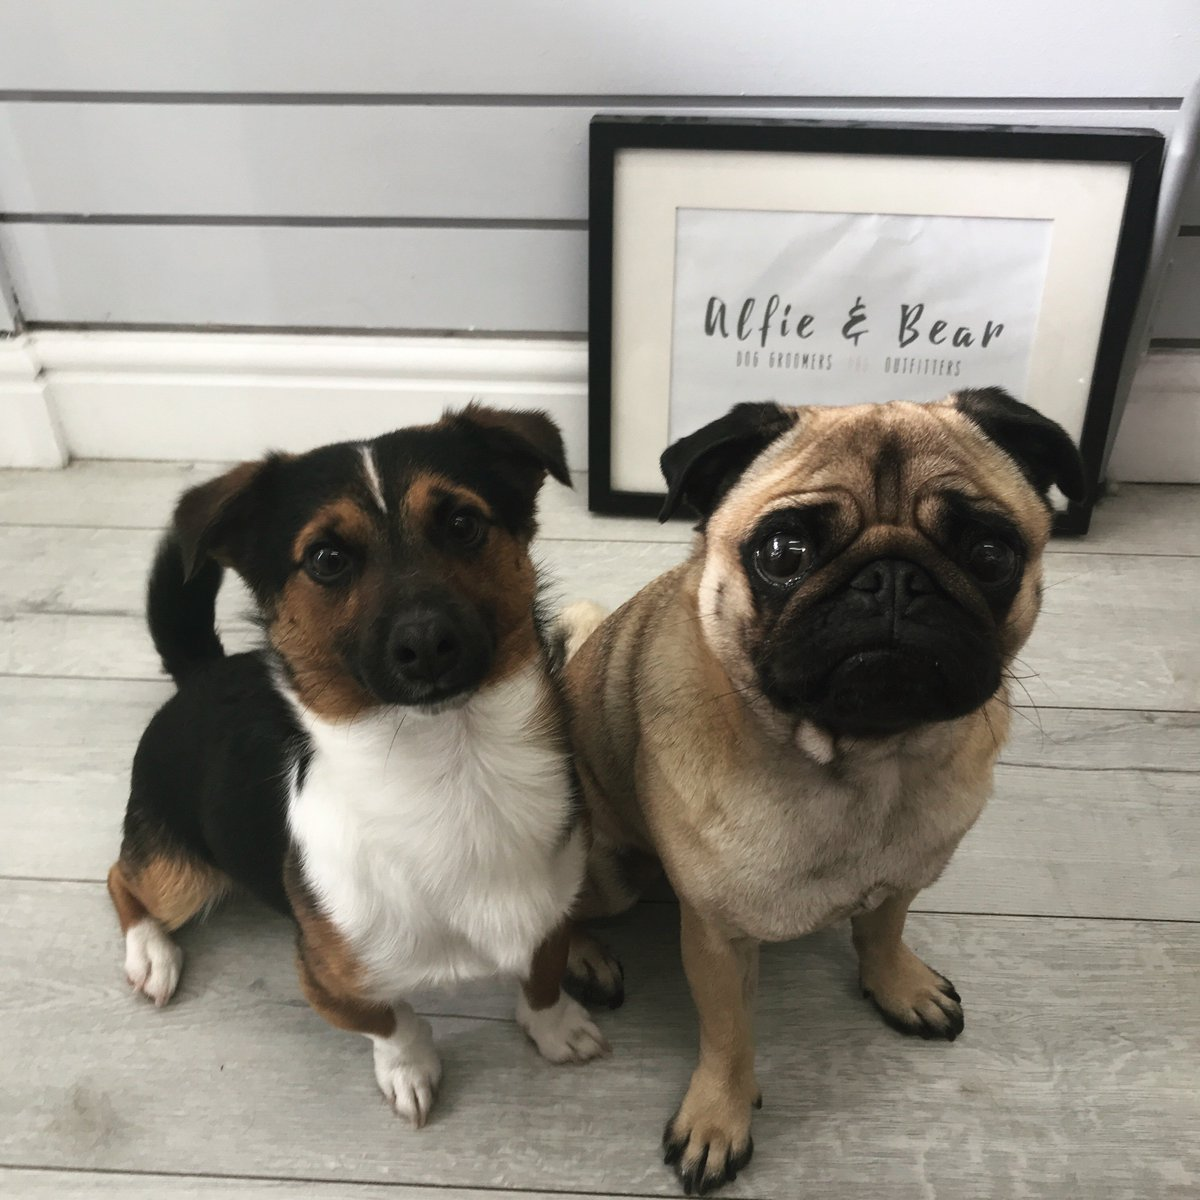 RT @AlfAndBear: Meet The Most Handsome New Boys  Benny & Monty  Welcome To The Pack    #DogGroomer #DogGrooming #Pug #JackRussell #DogSpa #DogGroomingSalon #Dogs #DogOfTheDay #DogsOfTwitter #DogLovers #NEFollowers #NewcastleUponTyne<br>http://pic.twitter.com/WR03hbhbGo